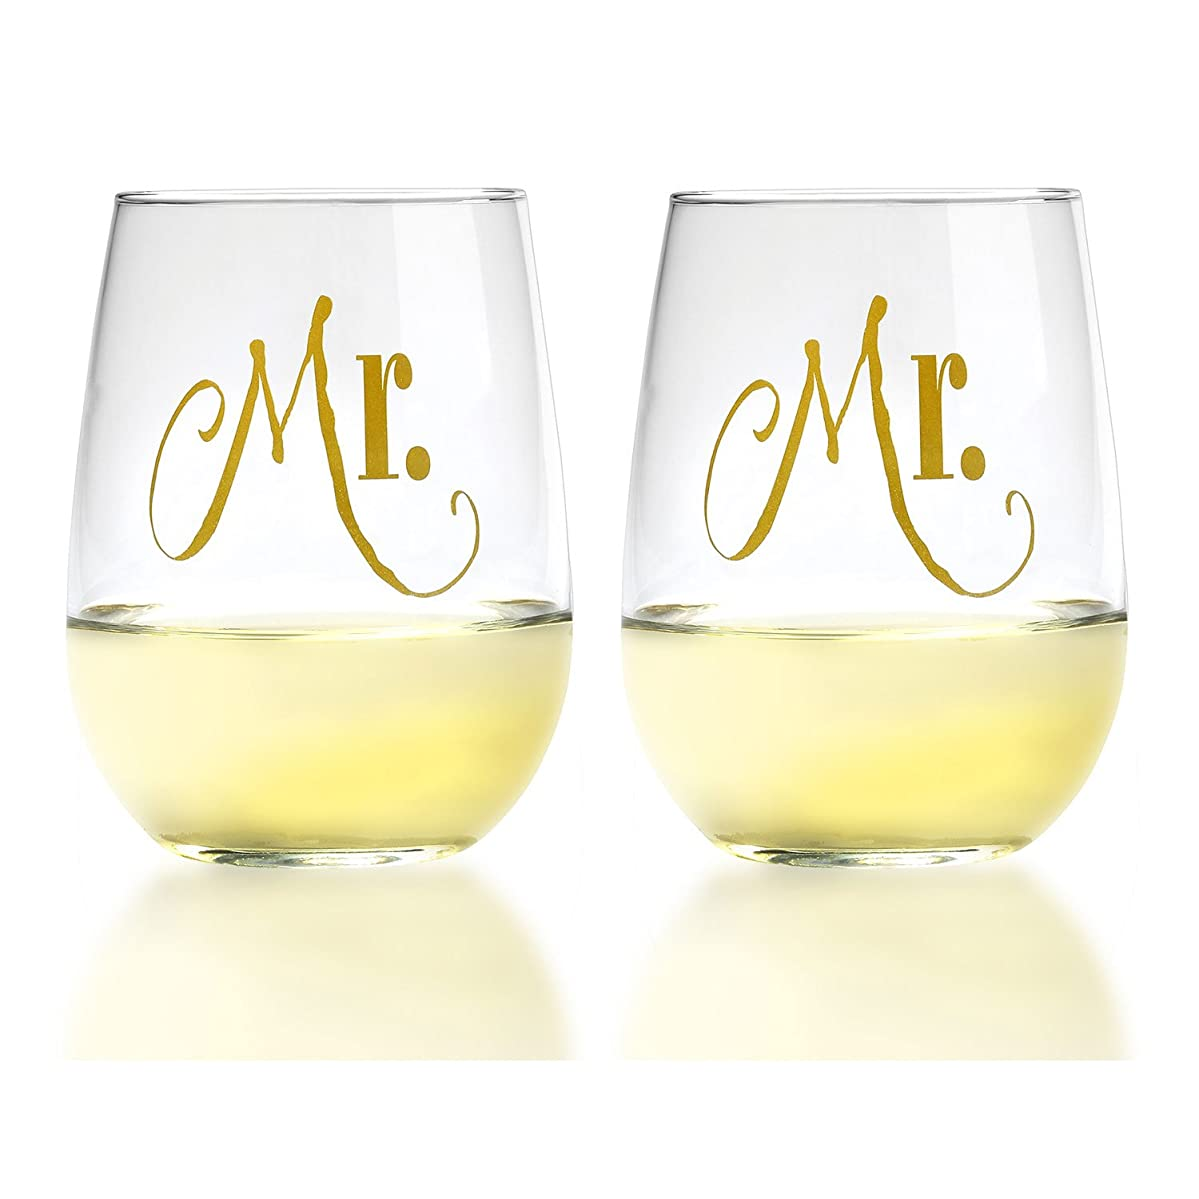 Mr. and Mr. Gay Couple Gold Stemless Wine Glasses With Gift Box - His and His Same Sex Set - Engagement, Wedding, Anniversary, House Warming, Host Gift, 17 Ounce